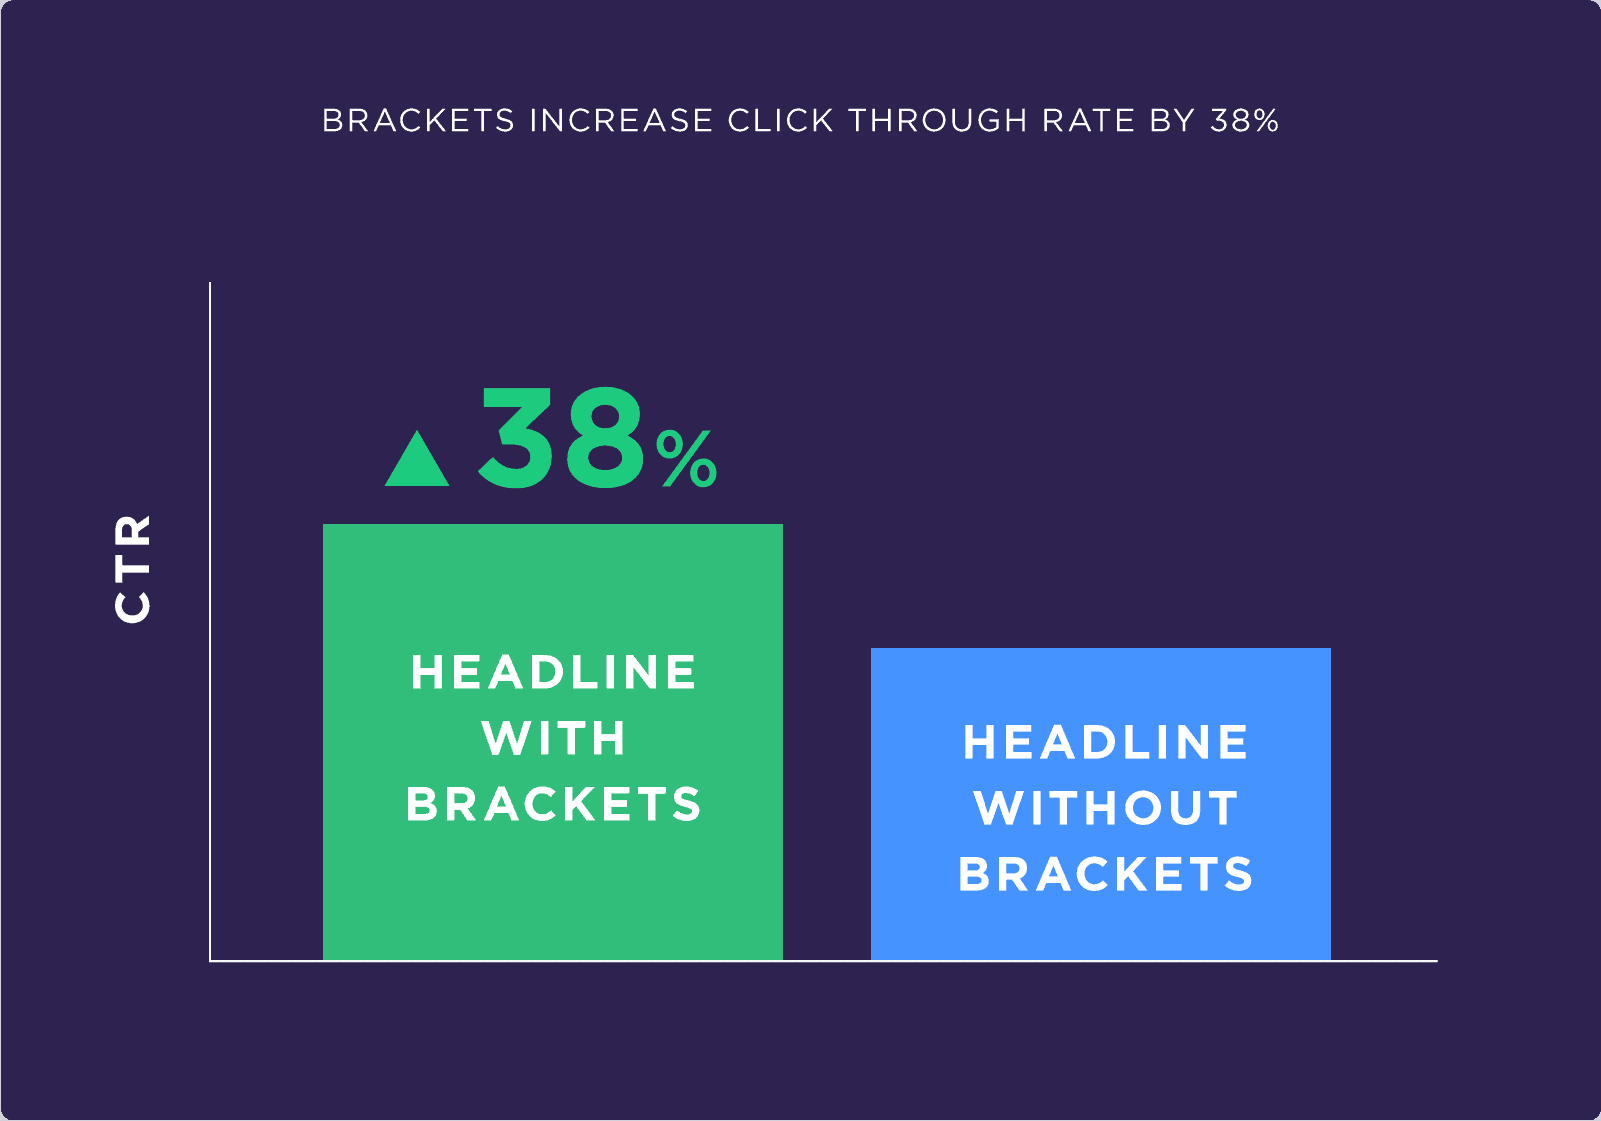 Brackets increase click through rate by 38%